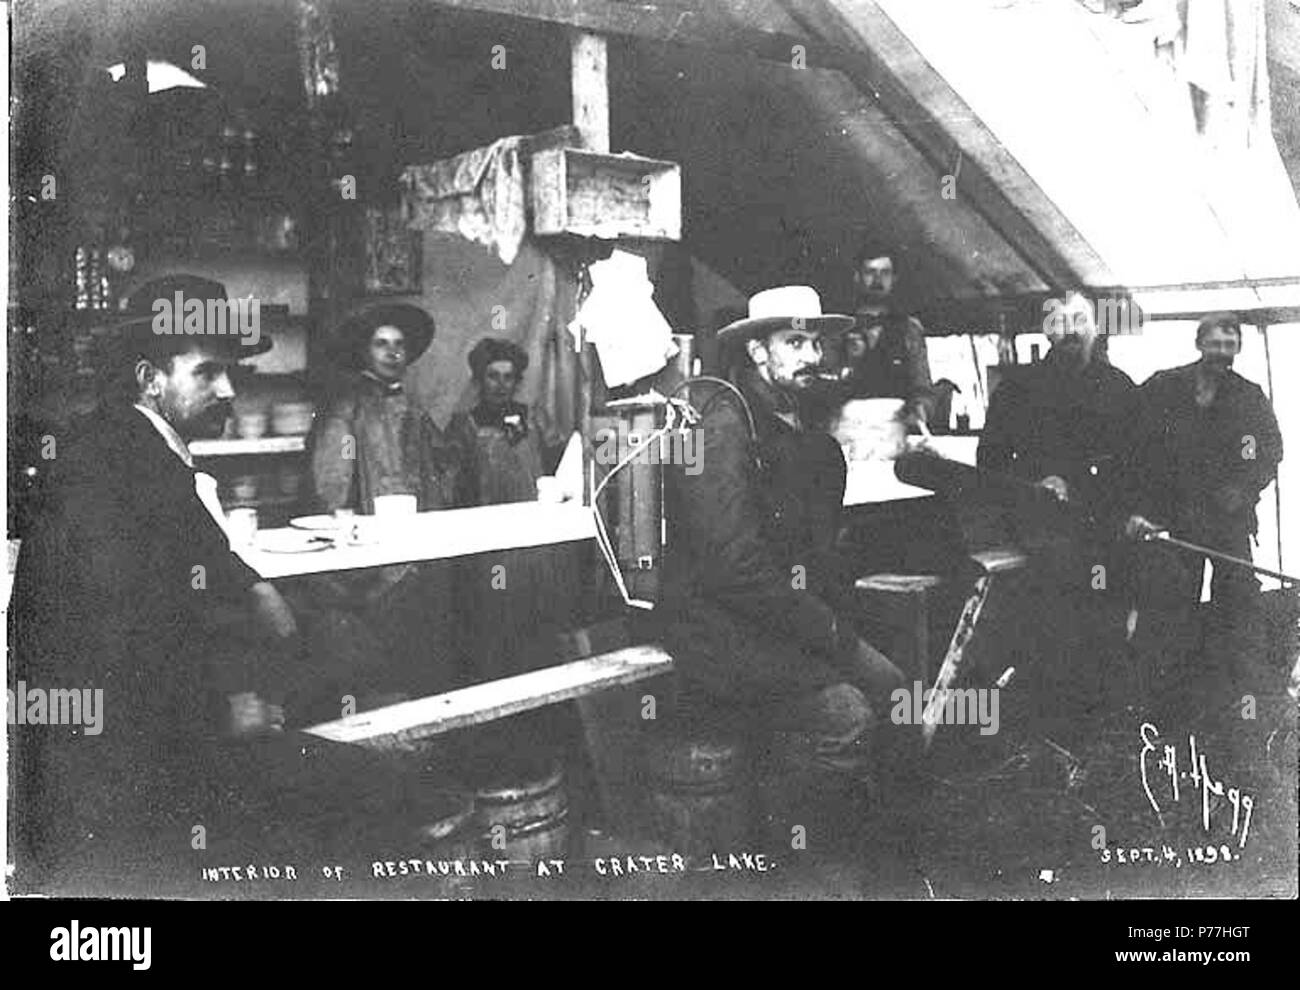 . English: Interior of restaurant, Crater Lake, British Columbia, September 4, 1898. English: Shows men sitting at table inside permanent tent structure . Caption on image: 'Interior of restaurant at Crater Lake. Sept. 4, 1898' Klondike Gold Rush. Subjects (LCTGM): Restaurants--British Columbia Subjects (LCSH): Chilkoot Trail; Trails--British Columbia  . 1898 6 Interior of restaurant, Crater Lake, British Columbia, September 4, 1898 (HEGG 290) - Stock Image